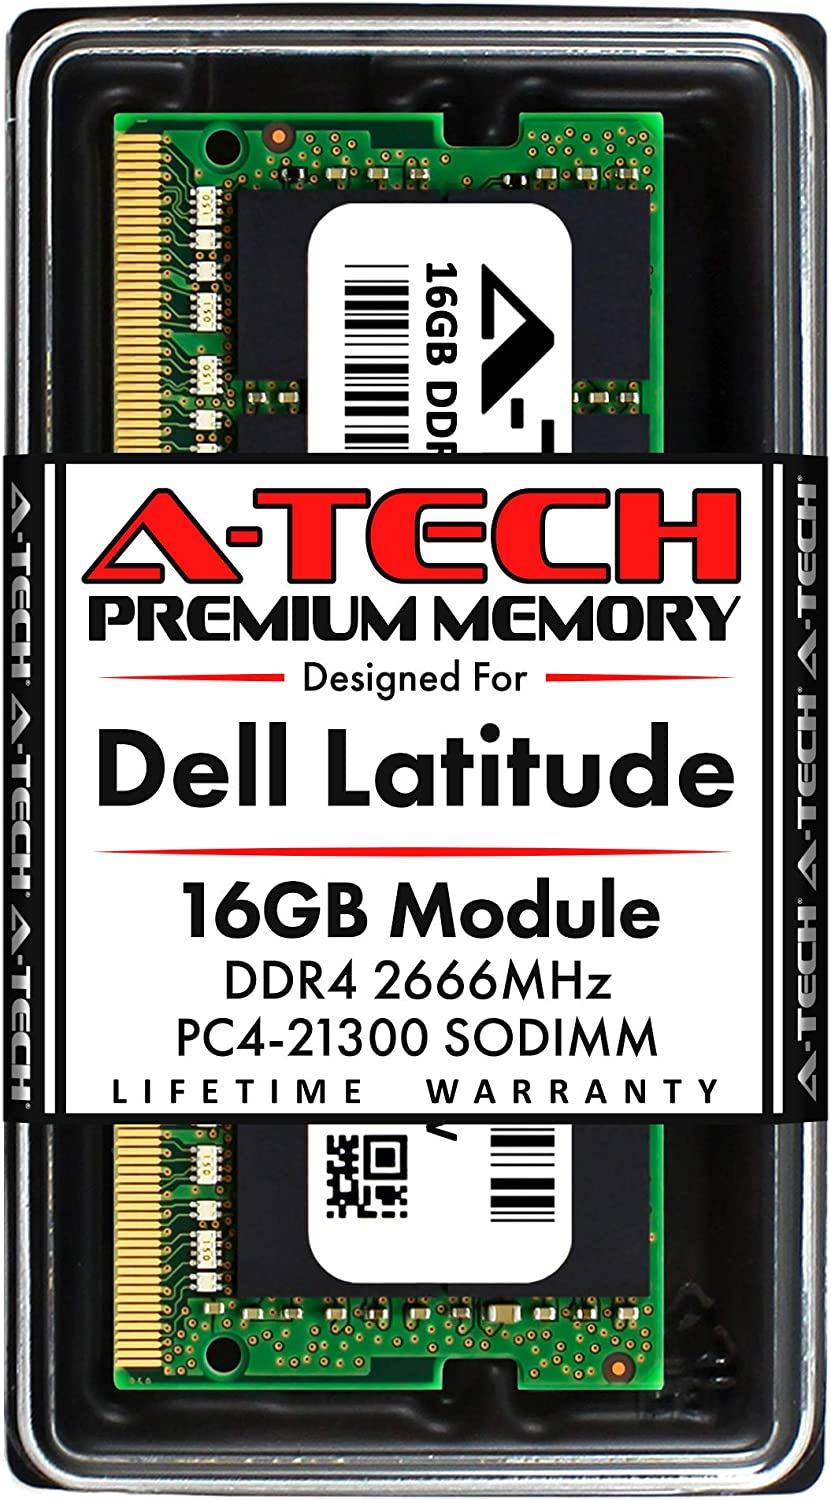 A-Tech 16GB RAM for Dell Latitude 5591, 5501, 5491, 5401 | DDR4 2666MHz SODIMM PC4-21300 Laptop Memory Upgrade Module